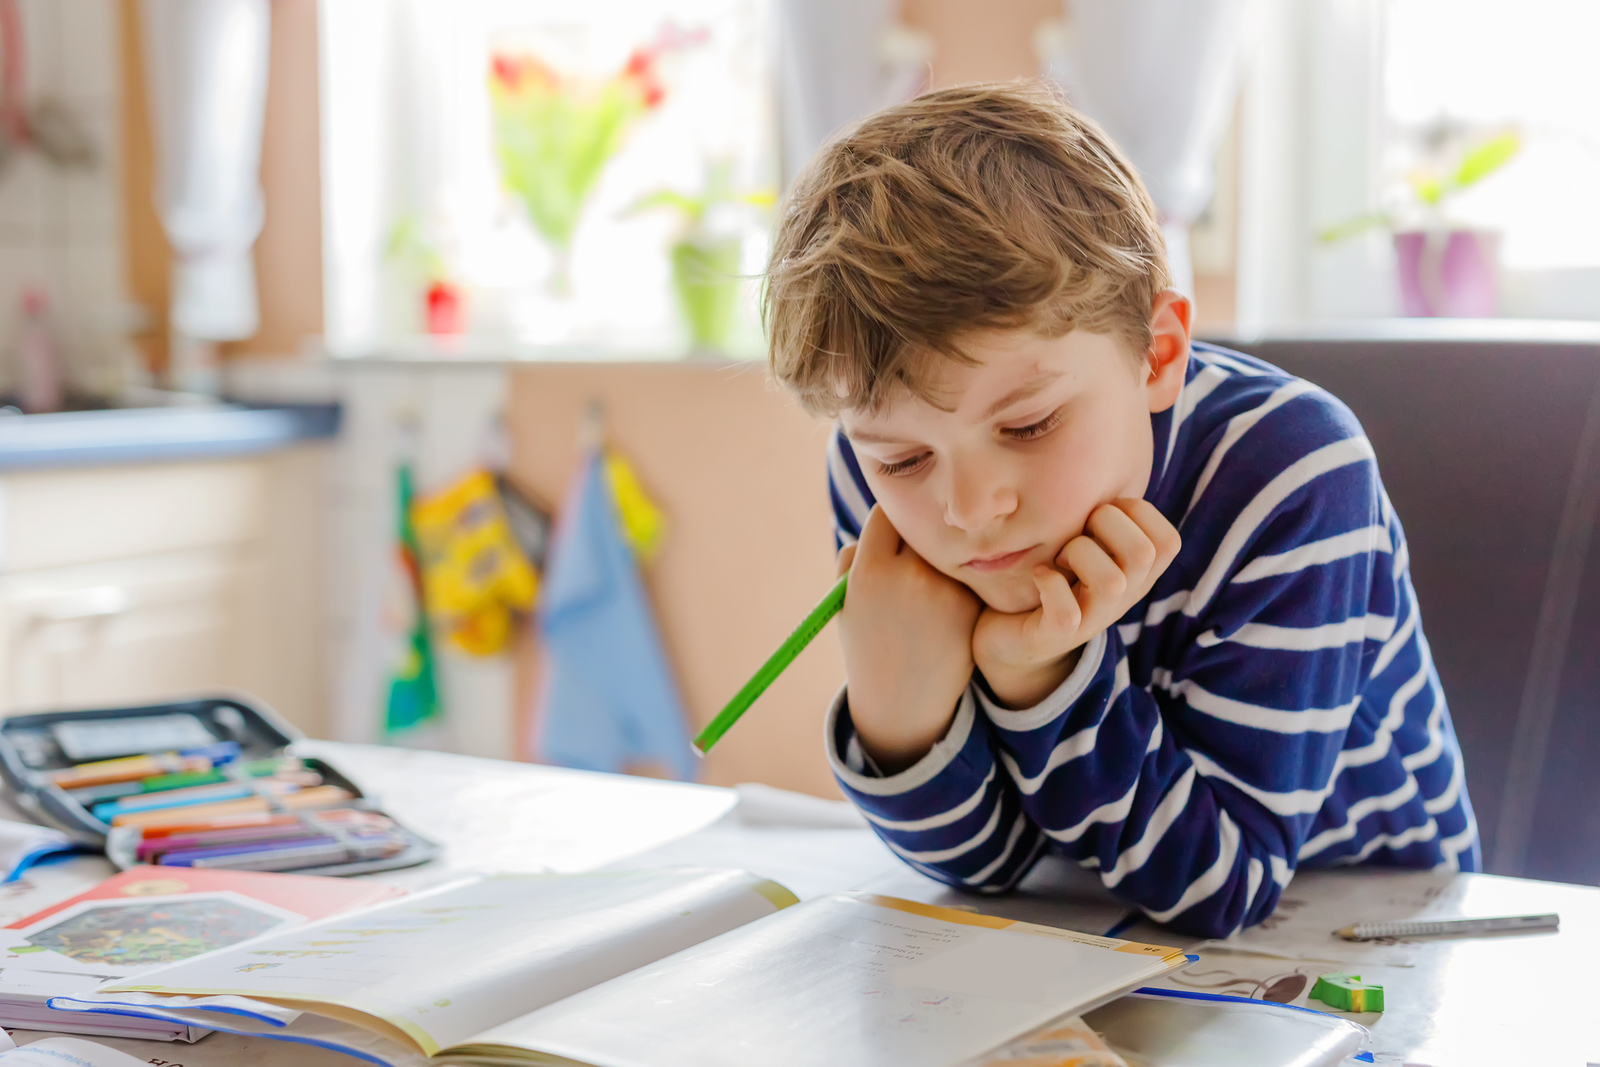 A young student looks at their homework with a confused look. This could represent the difficulties children with ADHD experience. Contact us to learn about ADHD testing near Tampa, FL, and if an ADHD test for kids can offer you support!